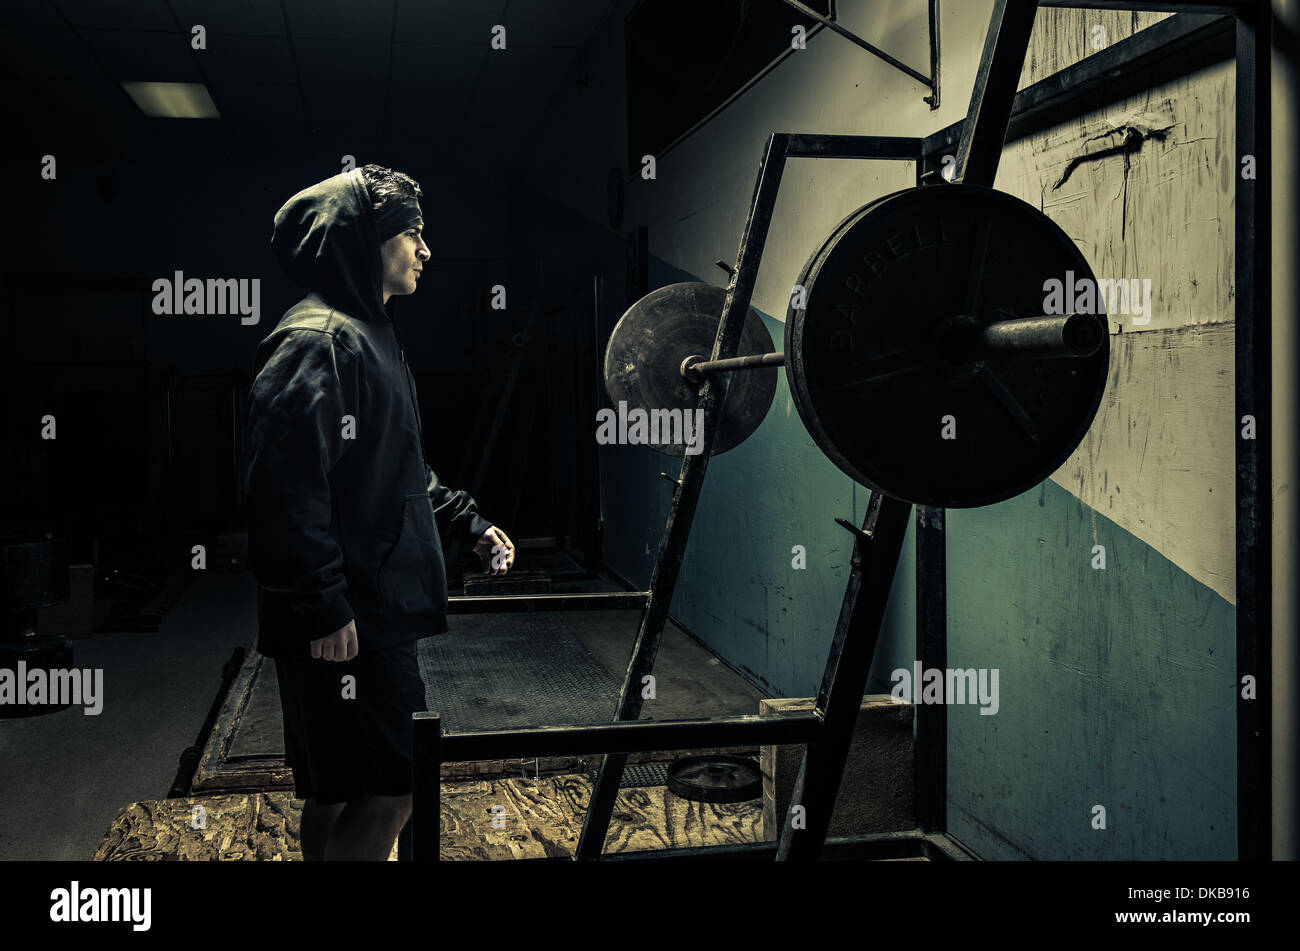 Weightlifter in dark gym - Stock Image